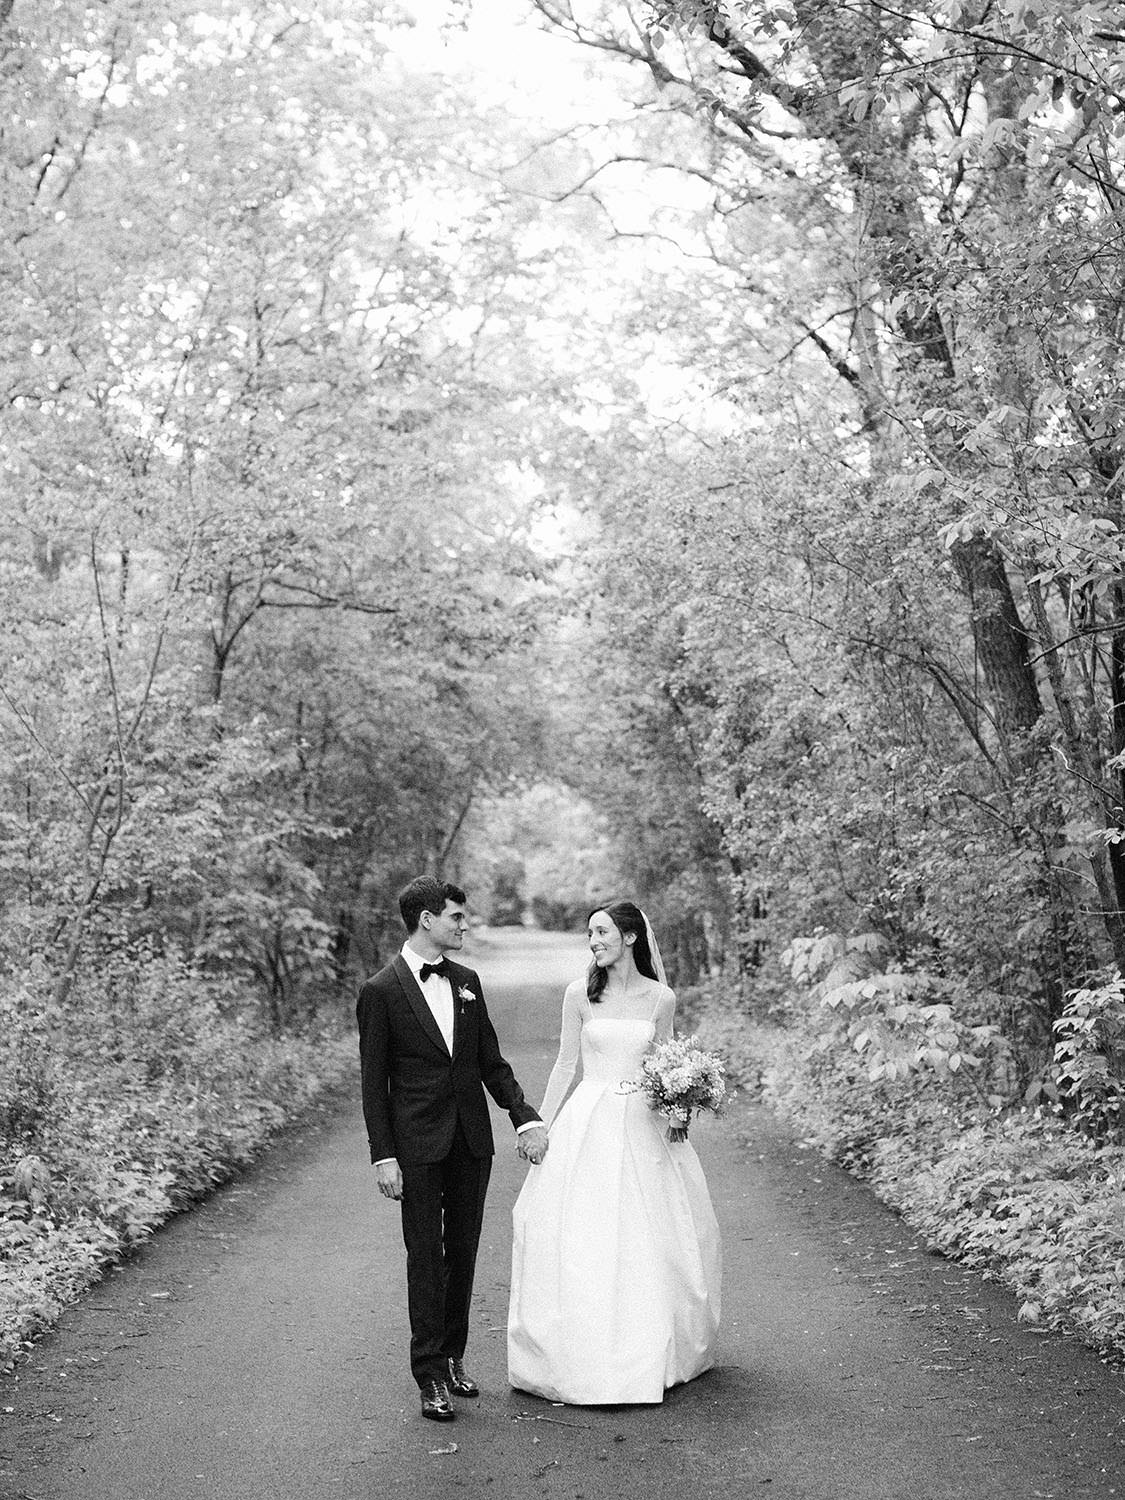 photo from the best north shore wedding photographers in chicago